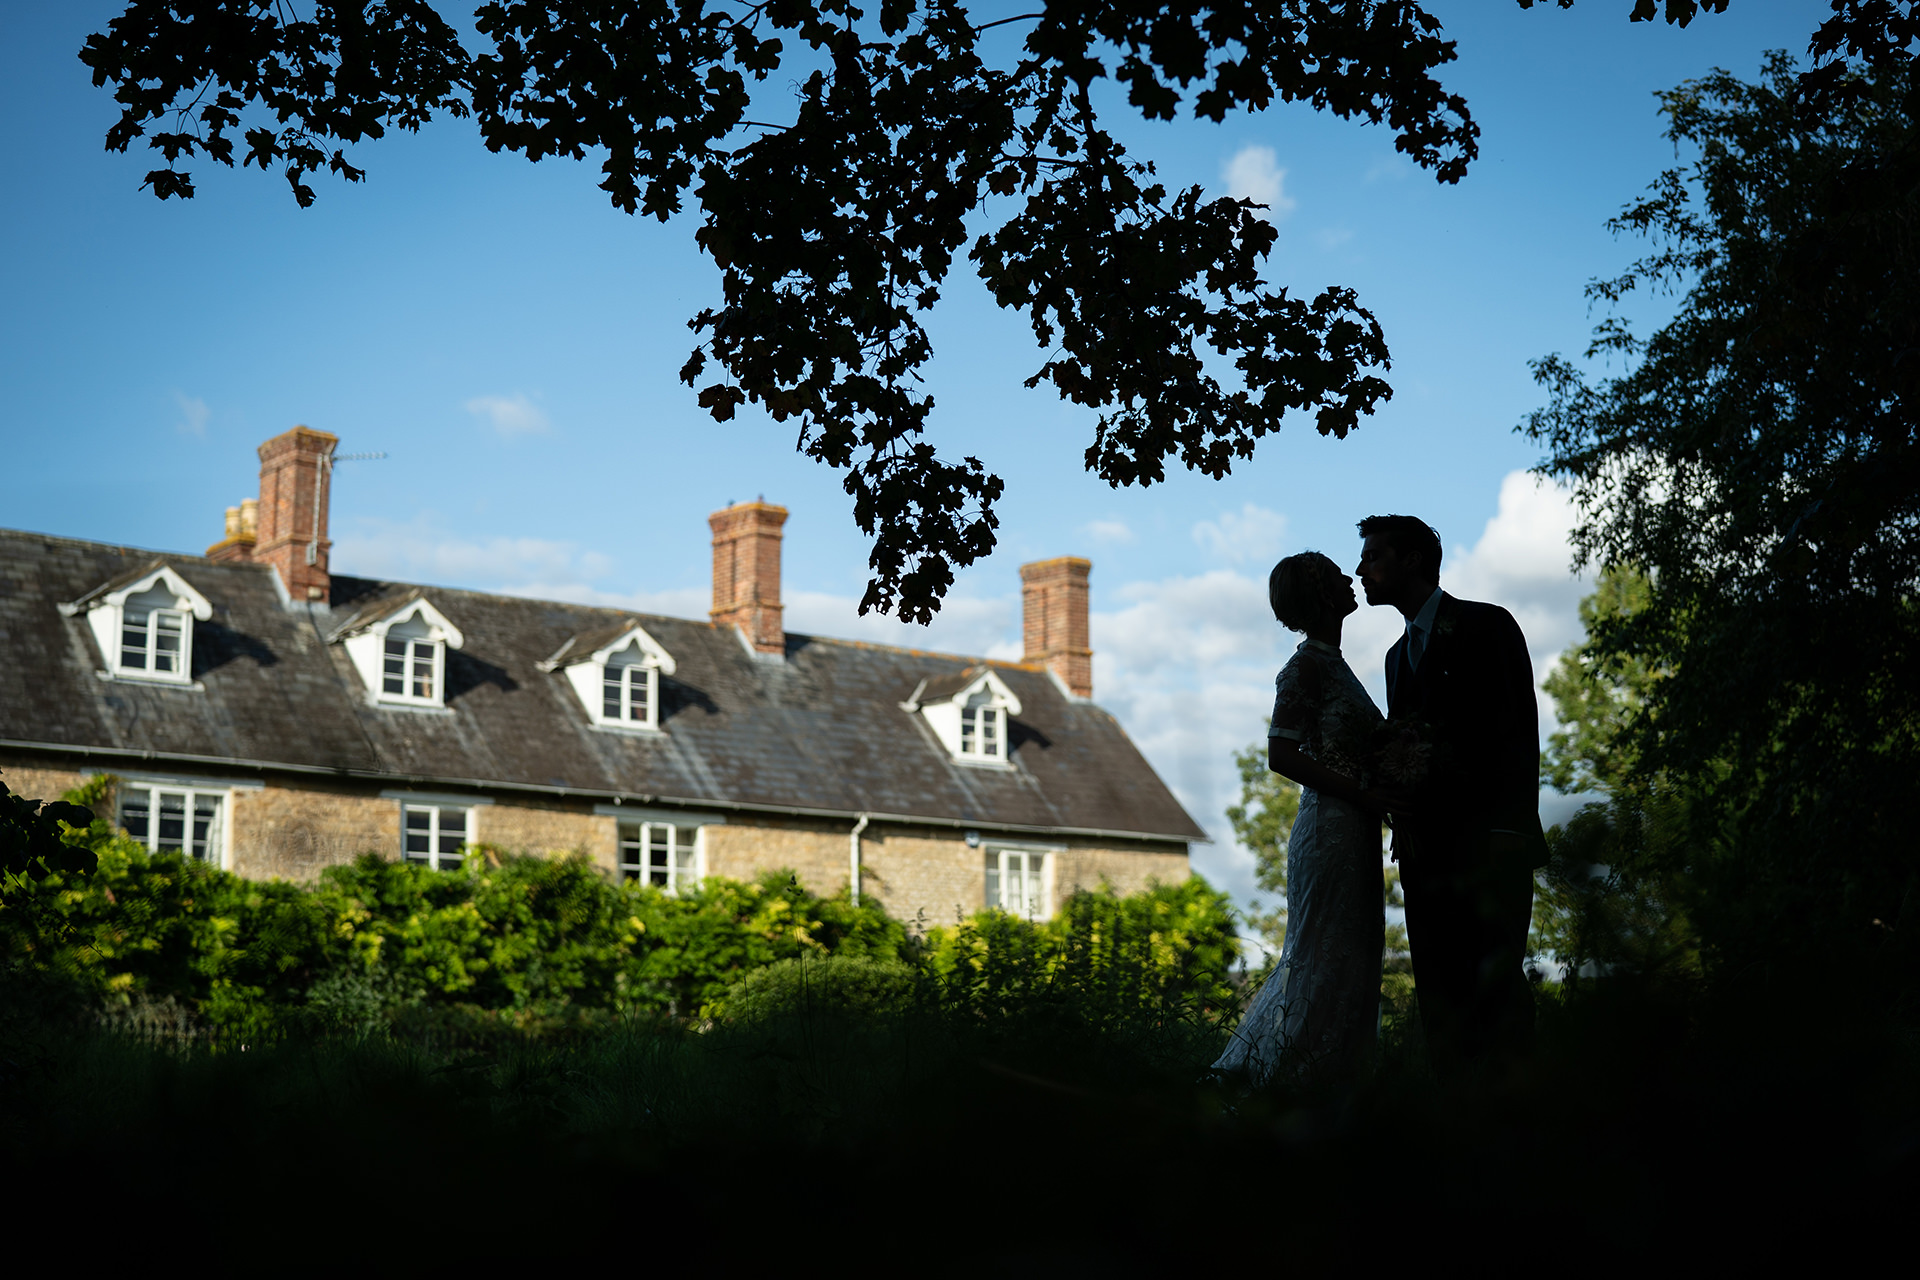 Natural wedding portrait of Newlyweds in front of Farmhouse